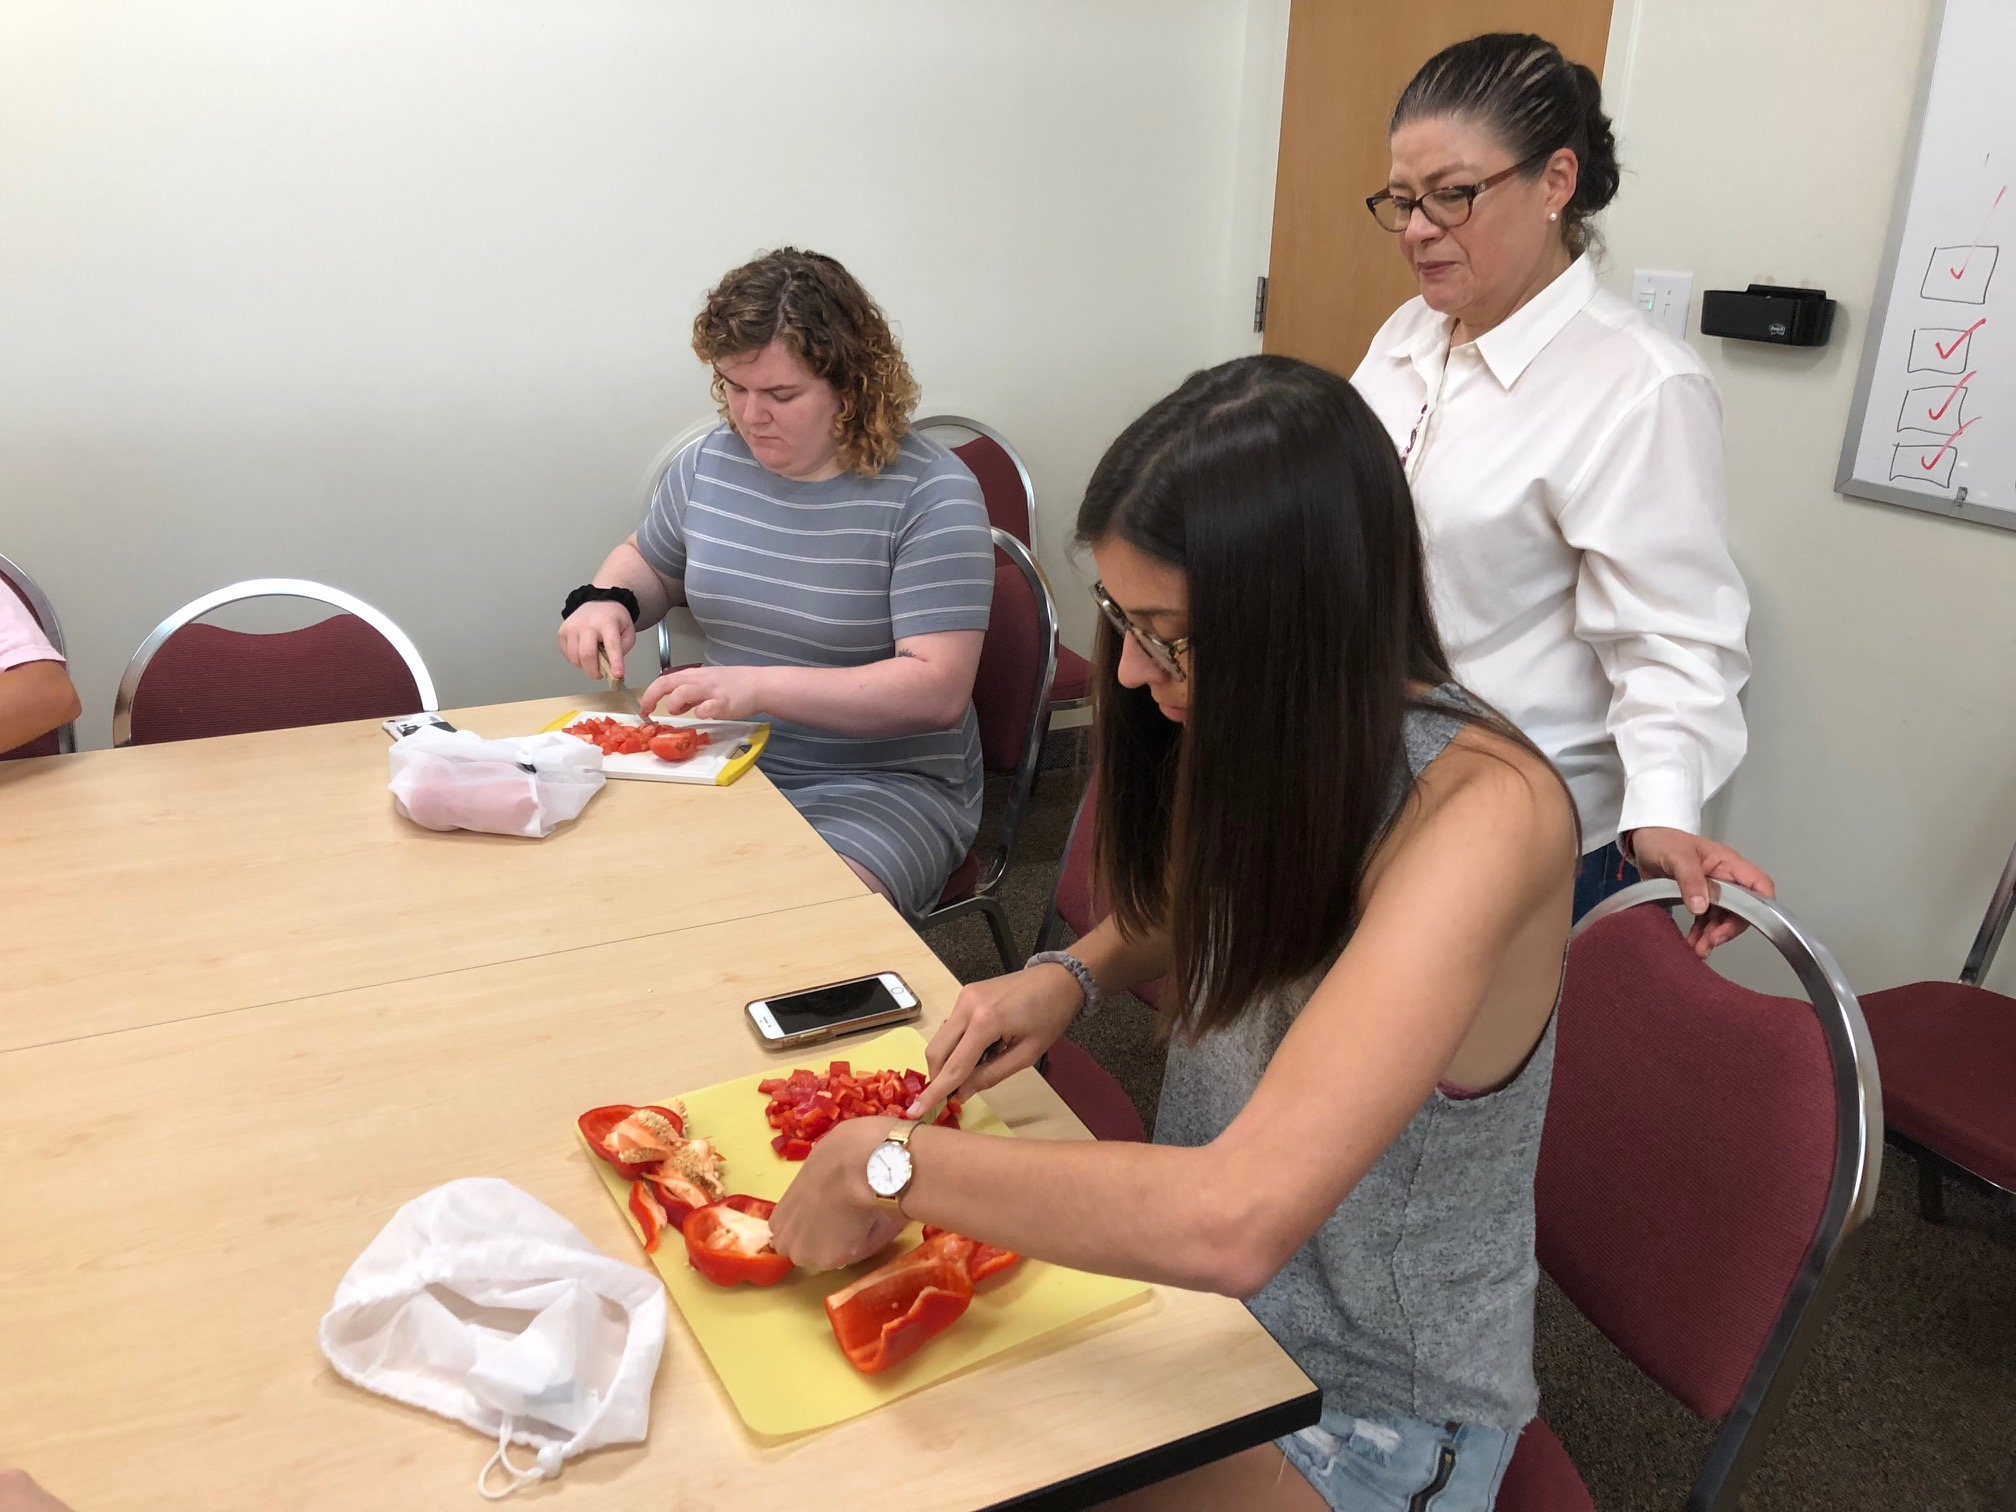 Students cutting vegetables at cooking workshop